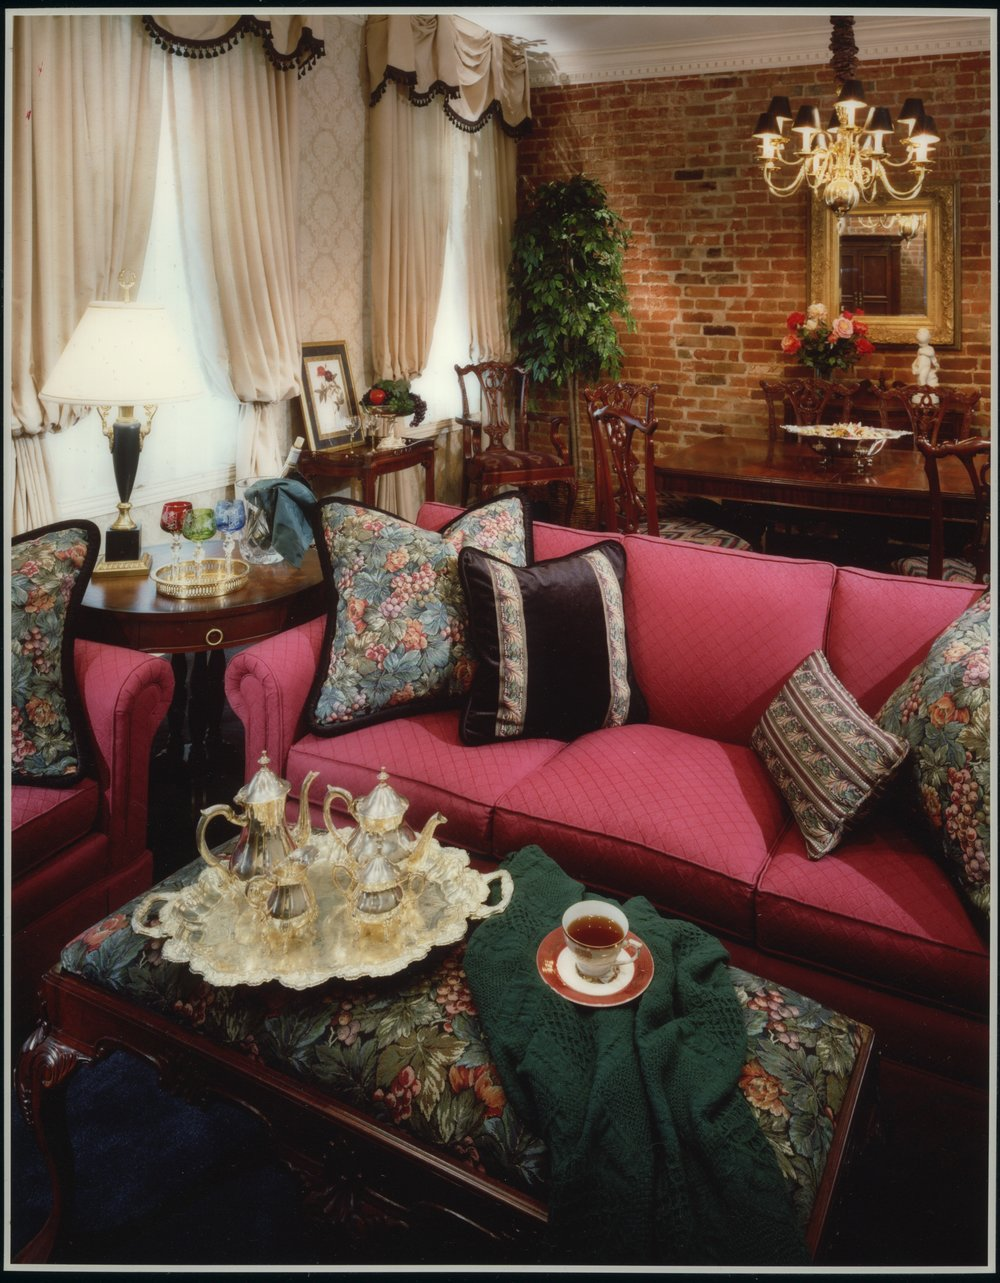 Nawlins Living Room 2006-Edit.jpg